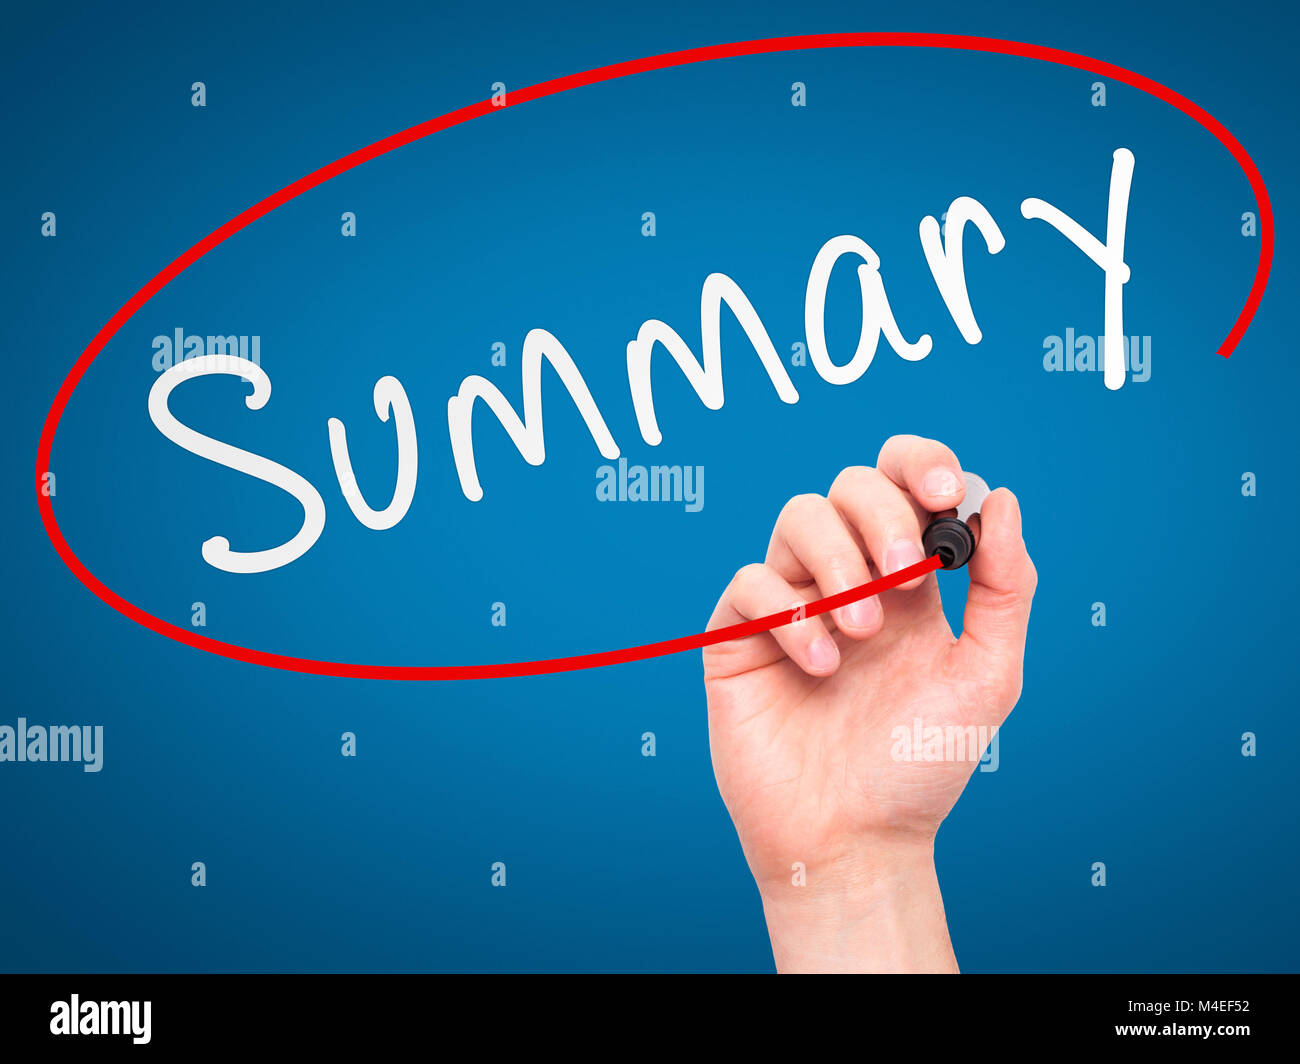 Man Hand writing Summary with marker on transparent wipe board - Stock Image